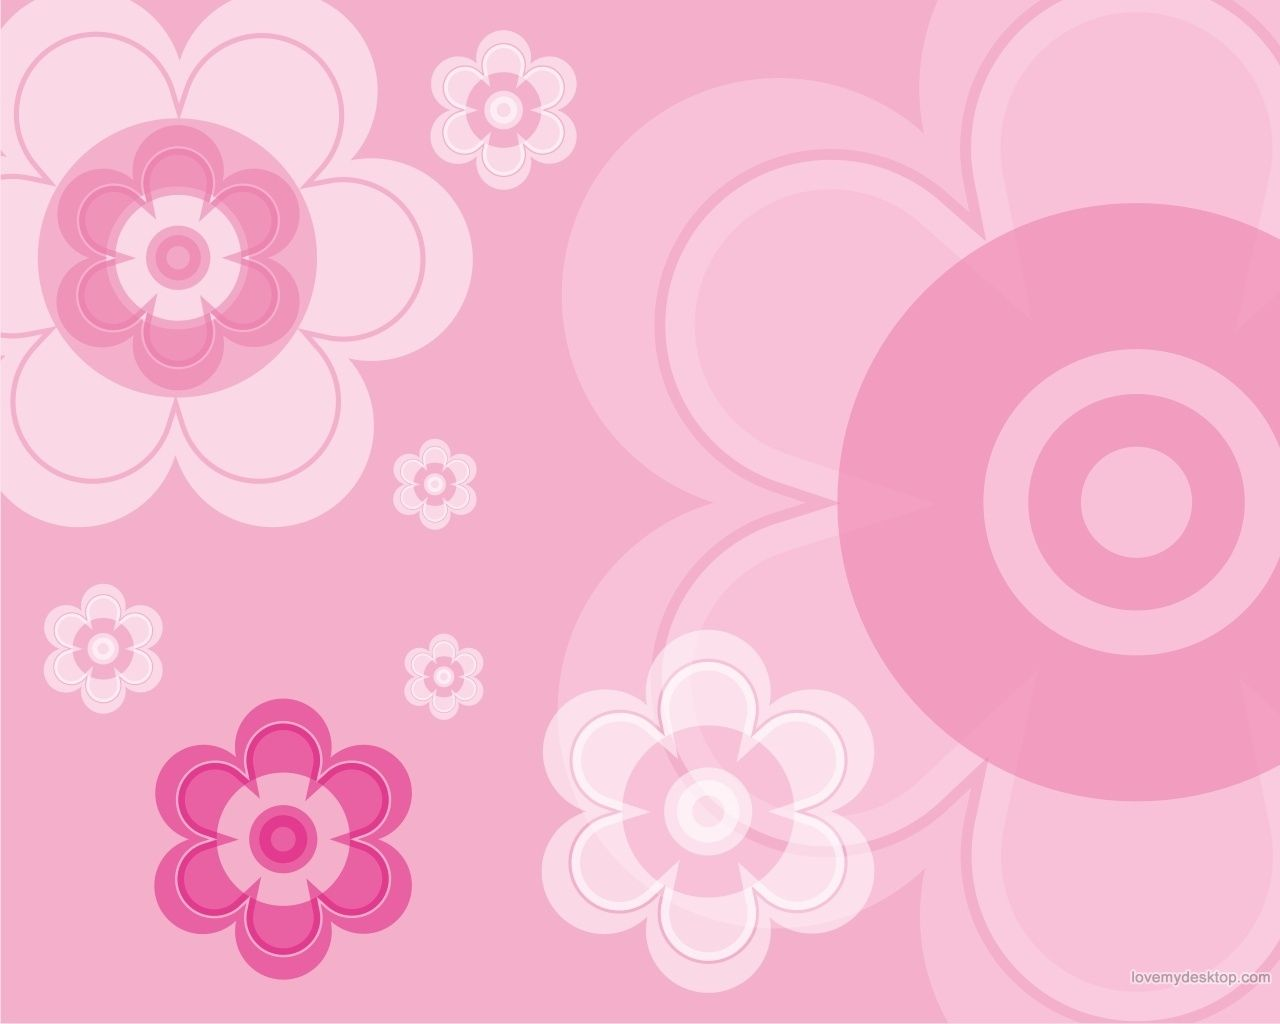 Brown and pink backgrounds cute wallpaper 7 pink hd wallpapers brown and pink backgrounds cute wallpaper 7 pink hd wallpapers colorful girly backgrounds voltagebd Images